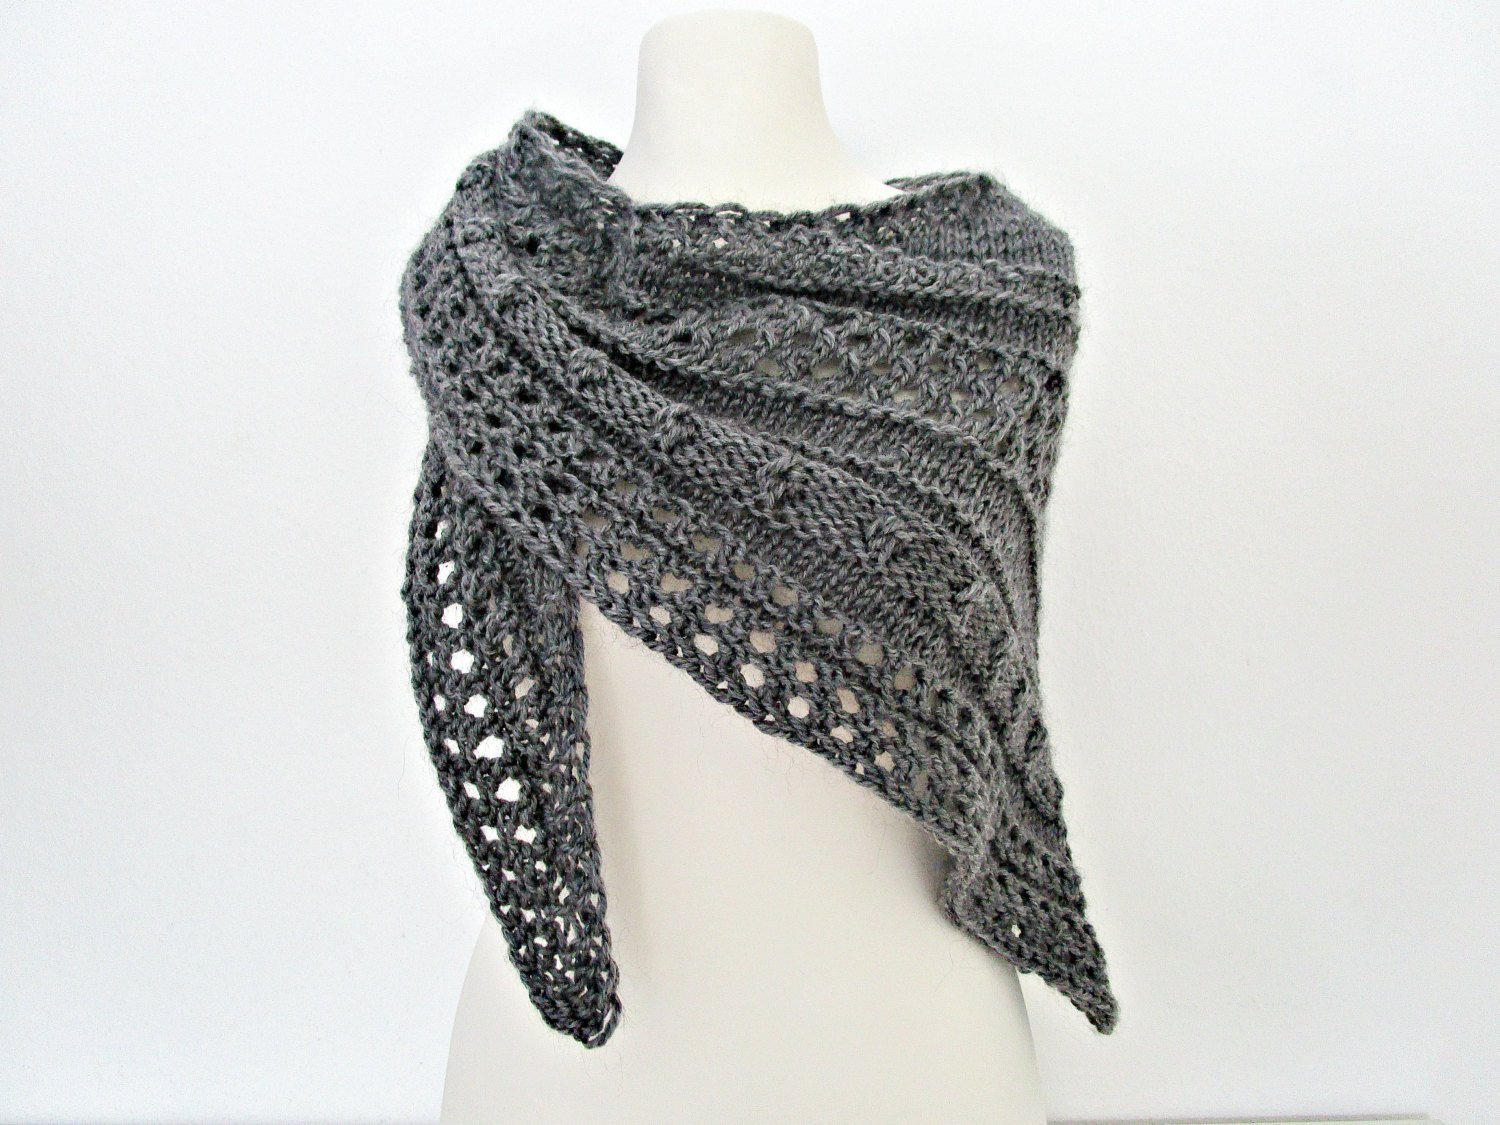 Knitted Shawl Beautiful Gray Knitted Shawls Hand Knit Shawl Wool Knitted Wrap Hand Of Fresh 47 Pics Knitted Shawl